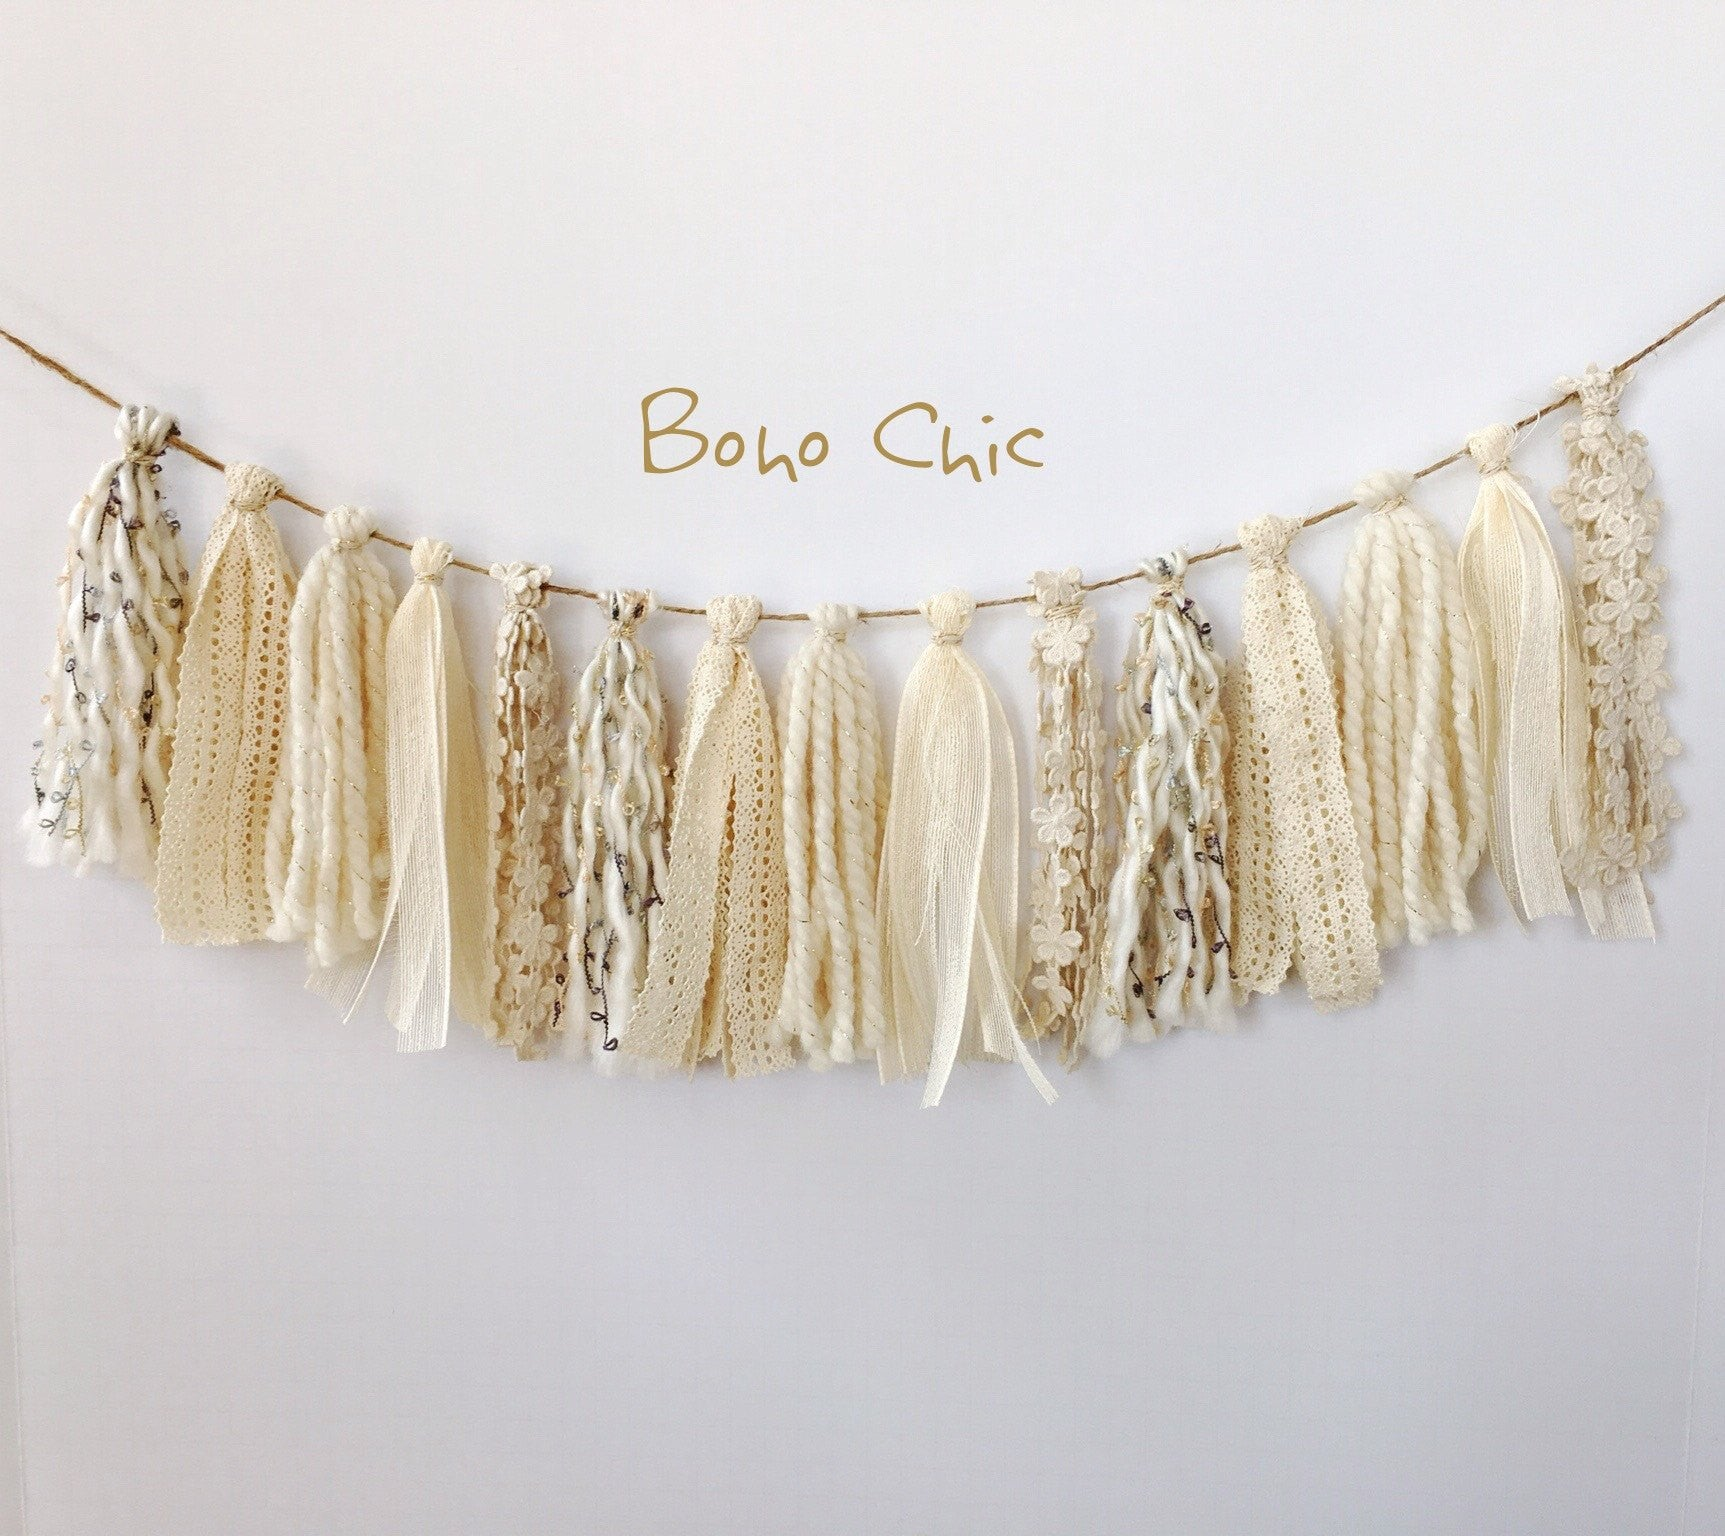 Tassel Garland Fabric Boho Chic Bon Co Party Studio Inc